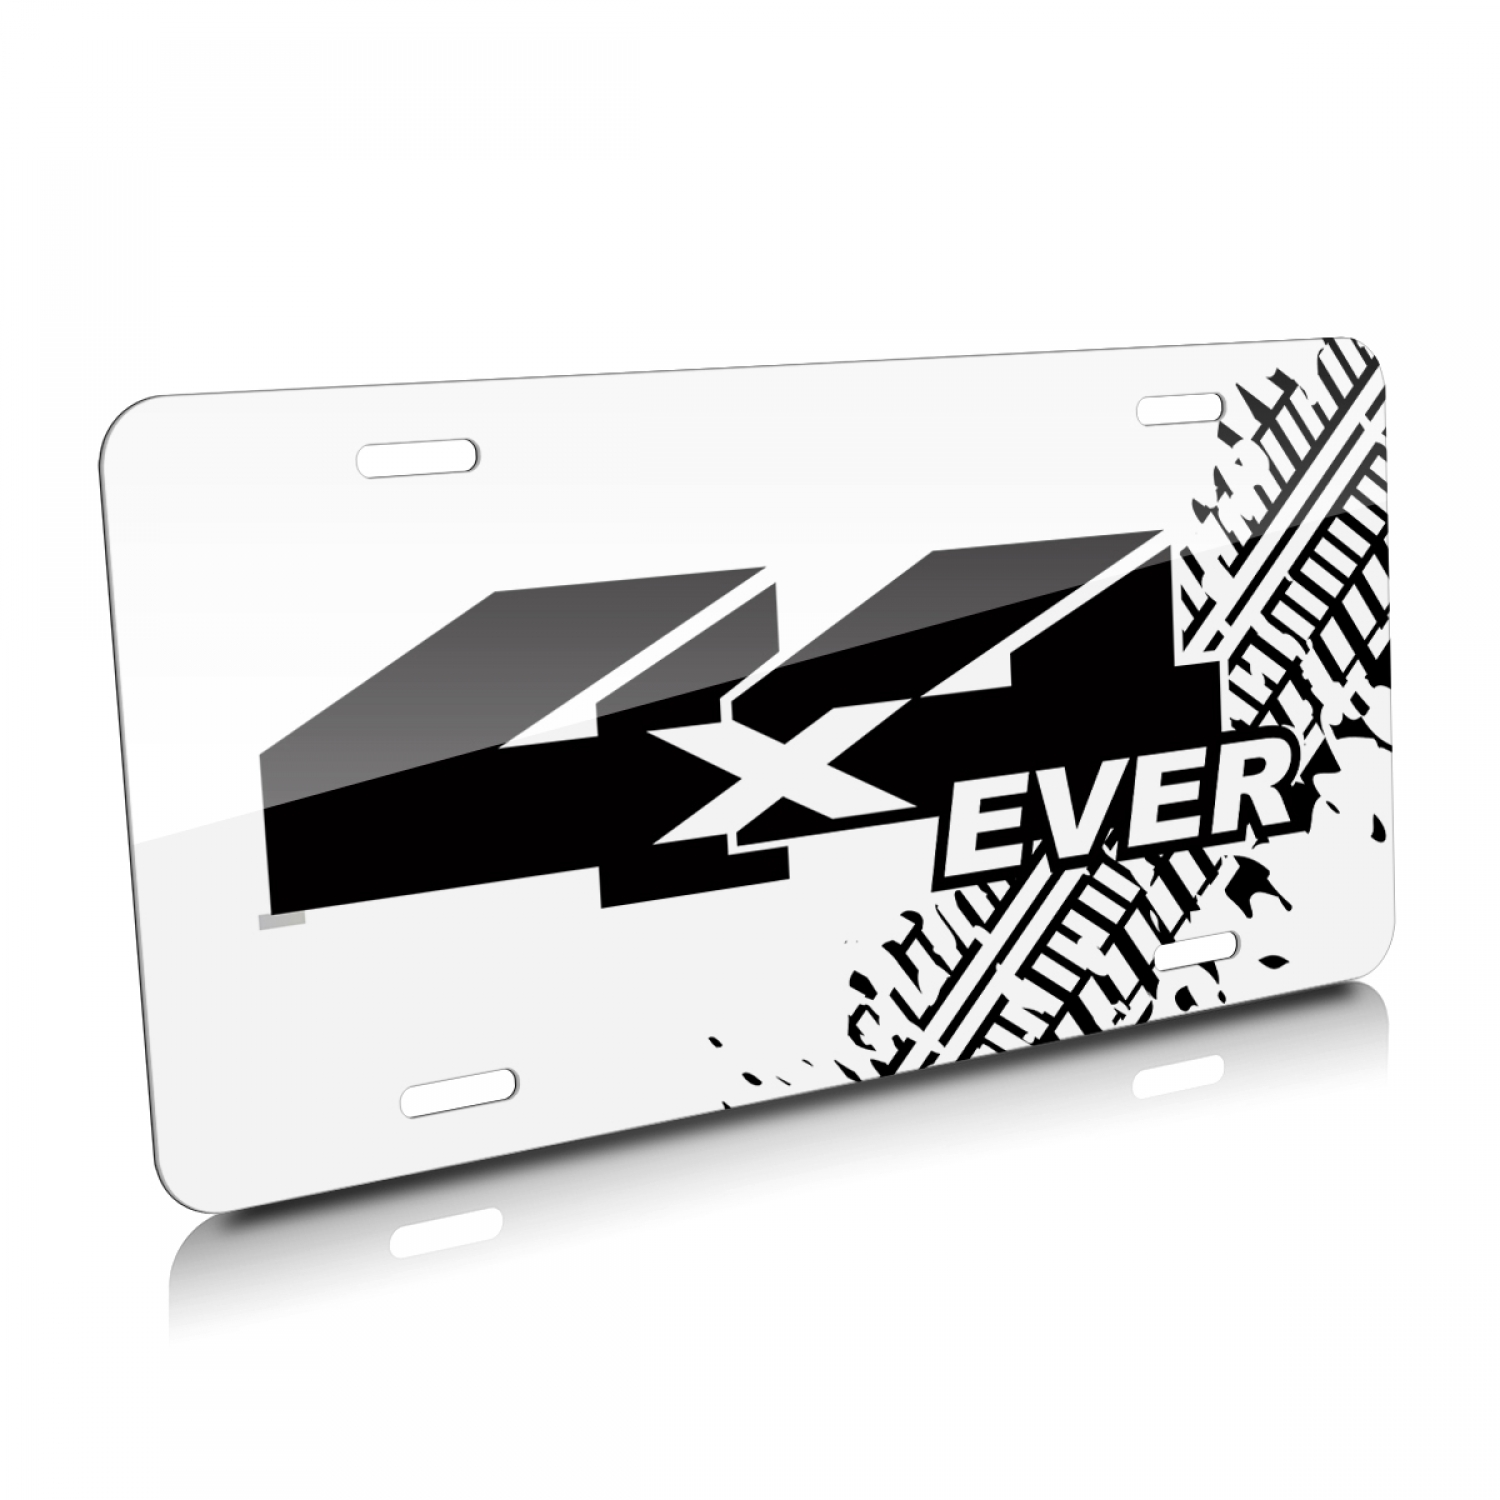 Jeep 4X4 Ever Tire Mark Graphic White Aluminum License Plate